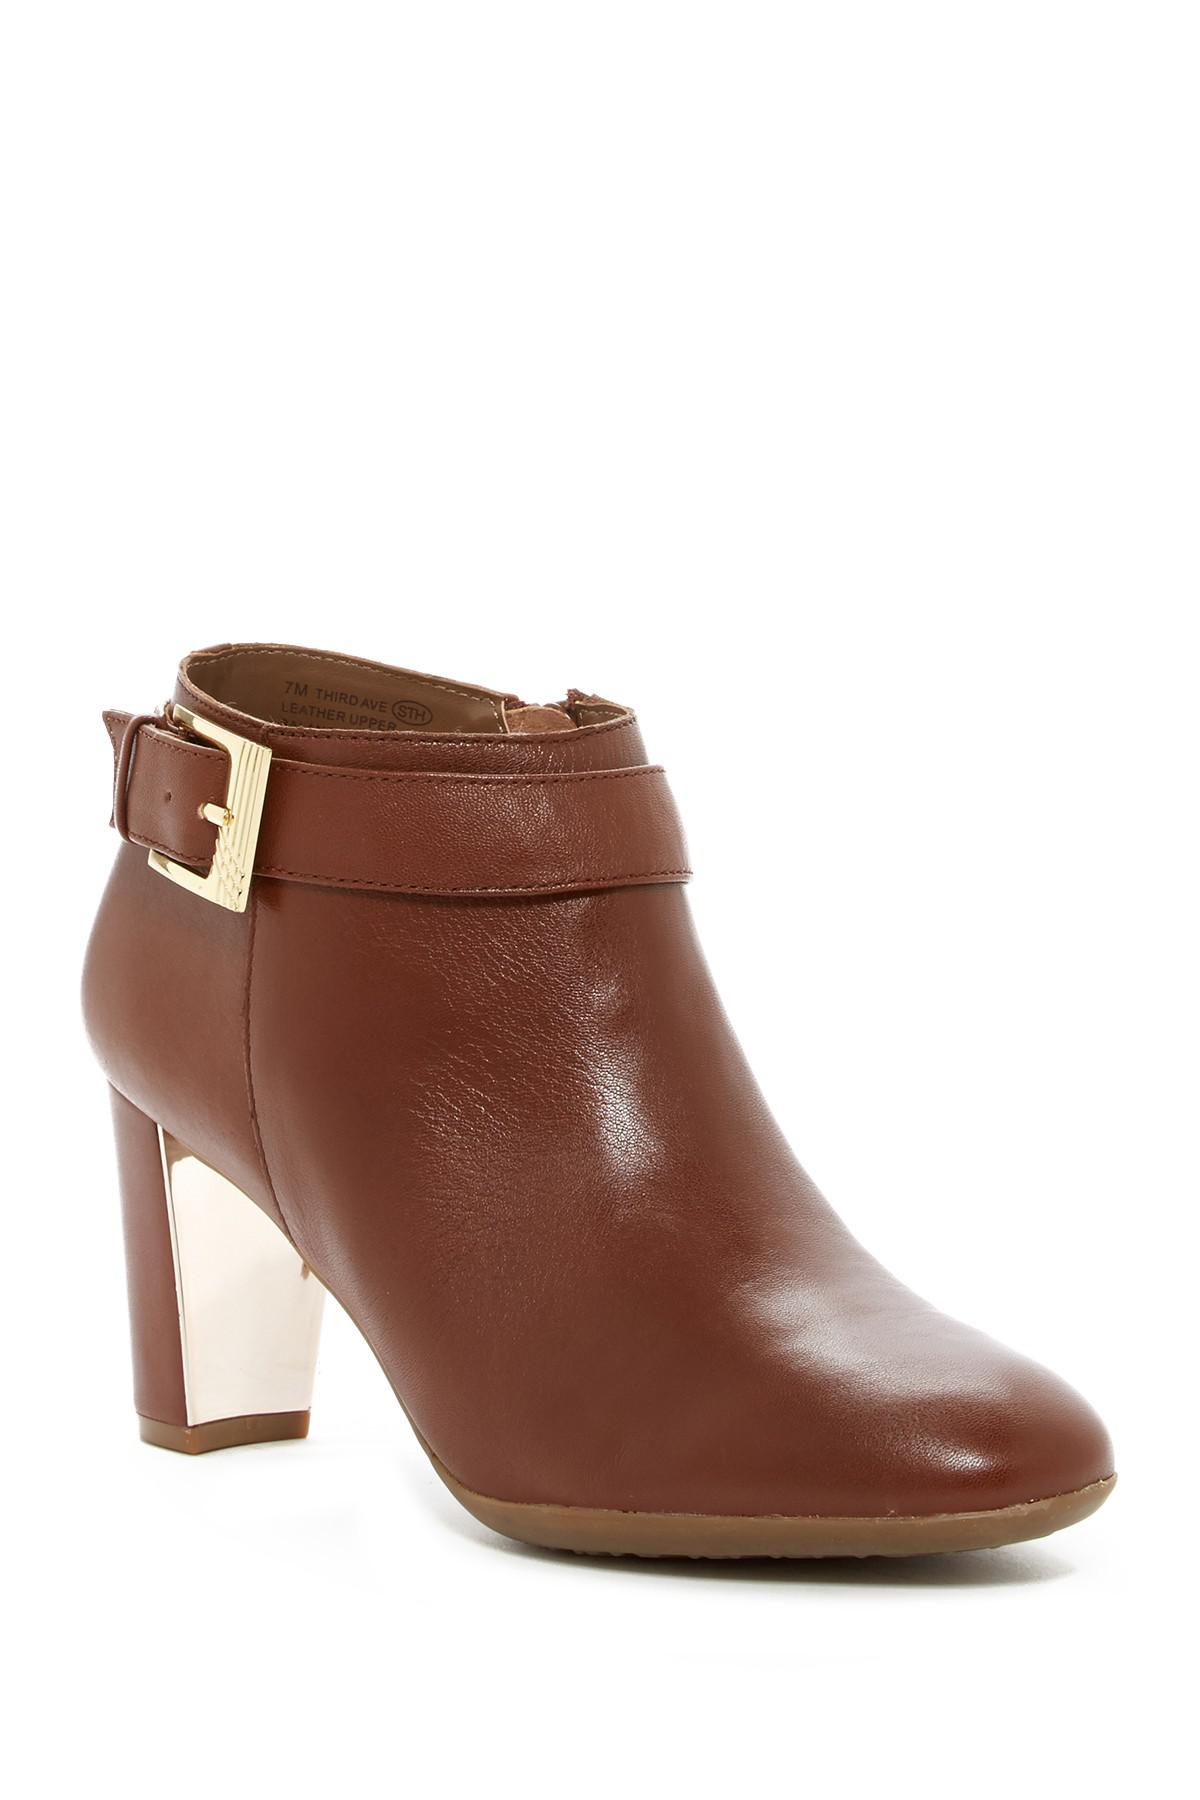 Aerosoles Third Ave Ankle Boot(Women's) -Dark Tan Leather Supply Cheap Price Sale Discounts Cheap Store Buy Cheap Choice Sale With Credit Card nuhS1qHcC